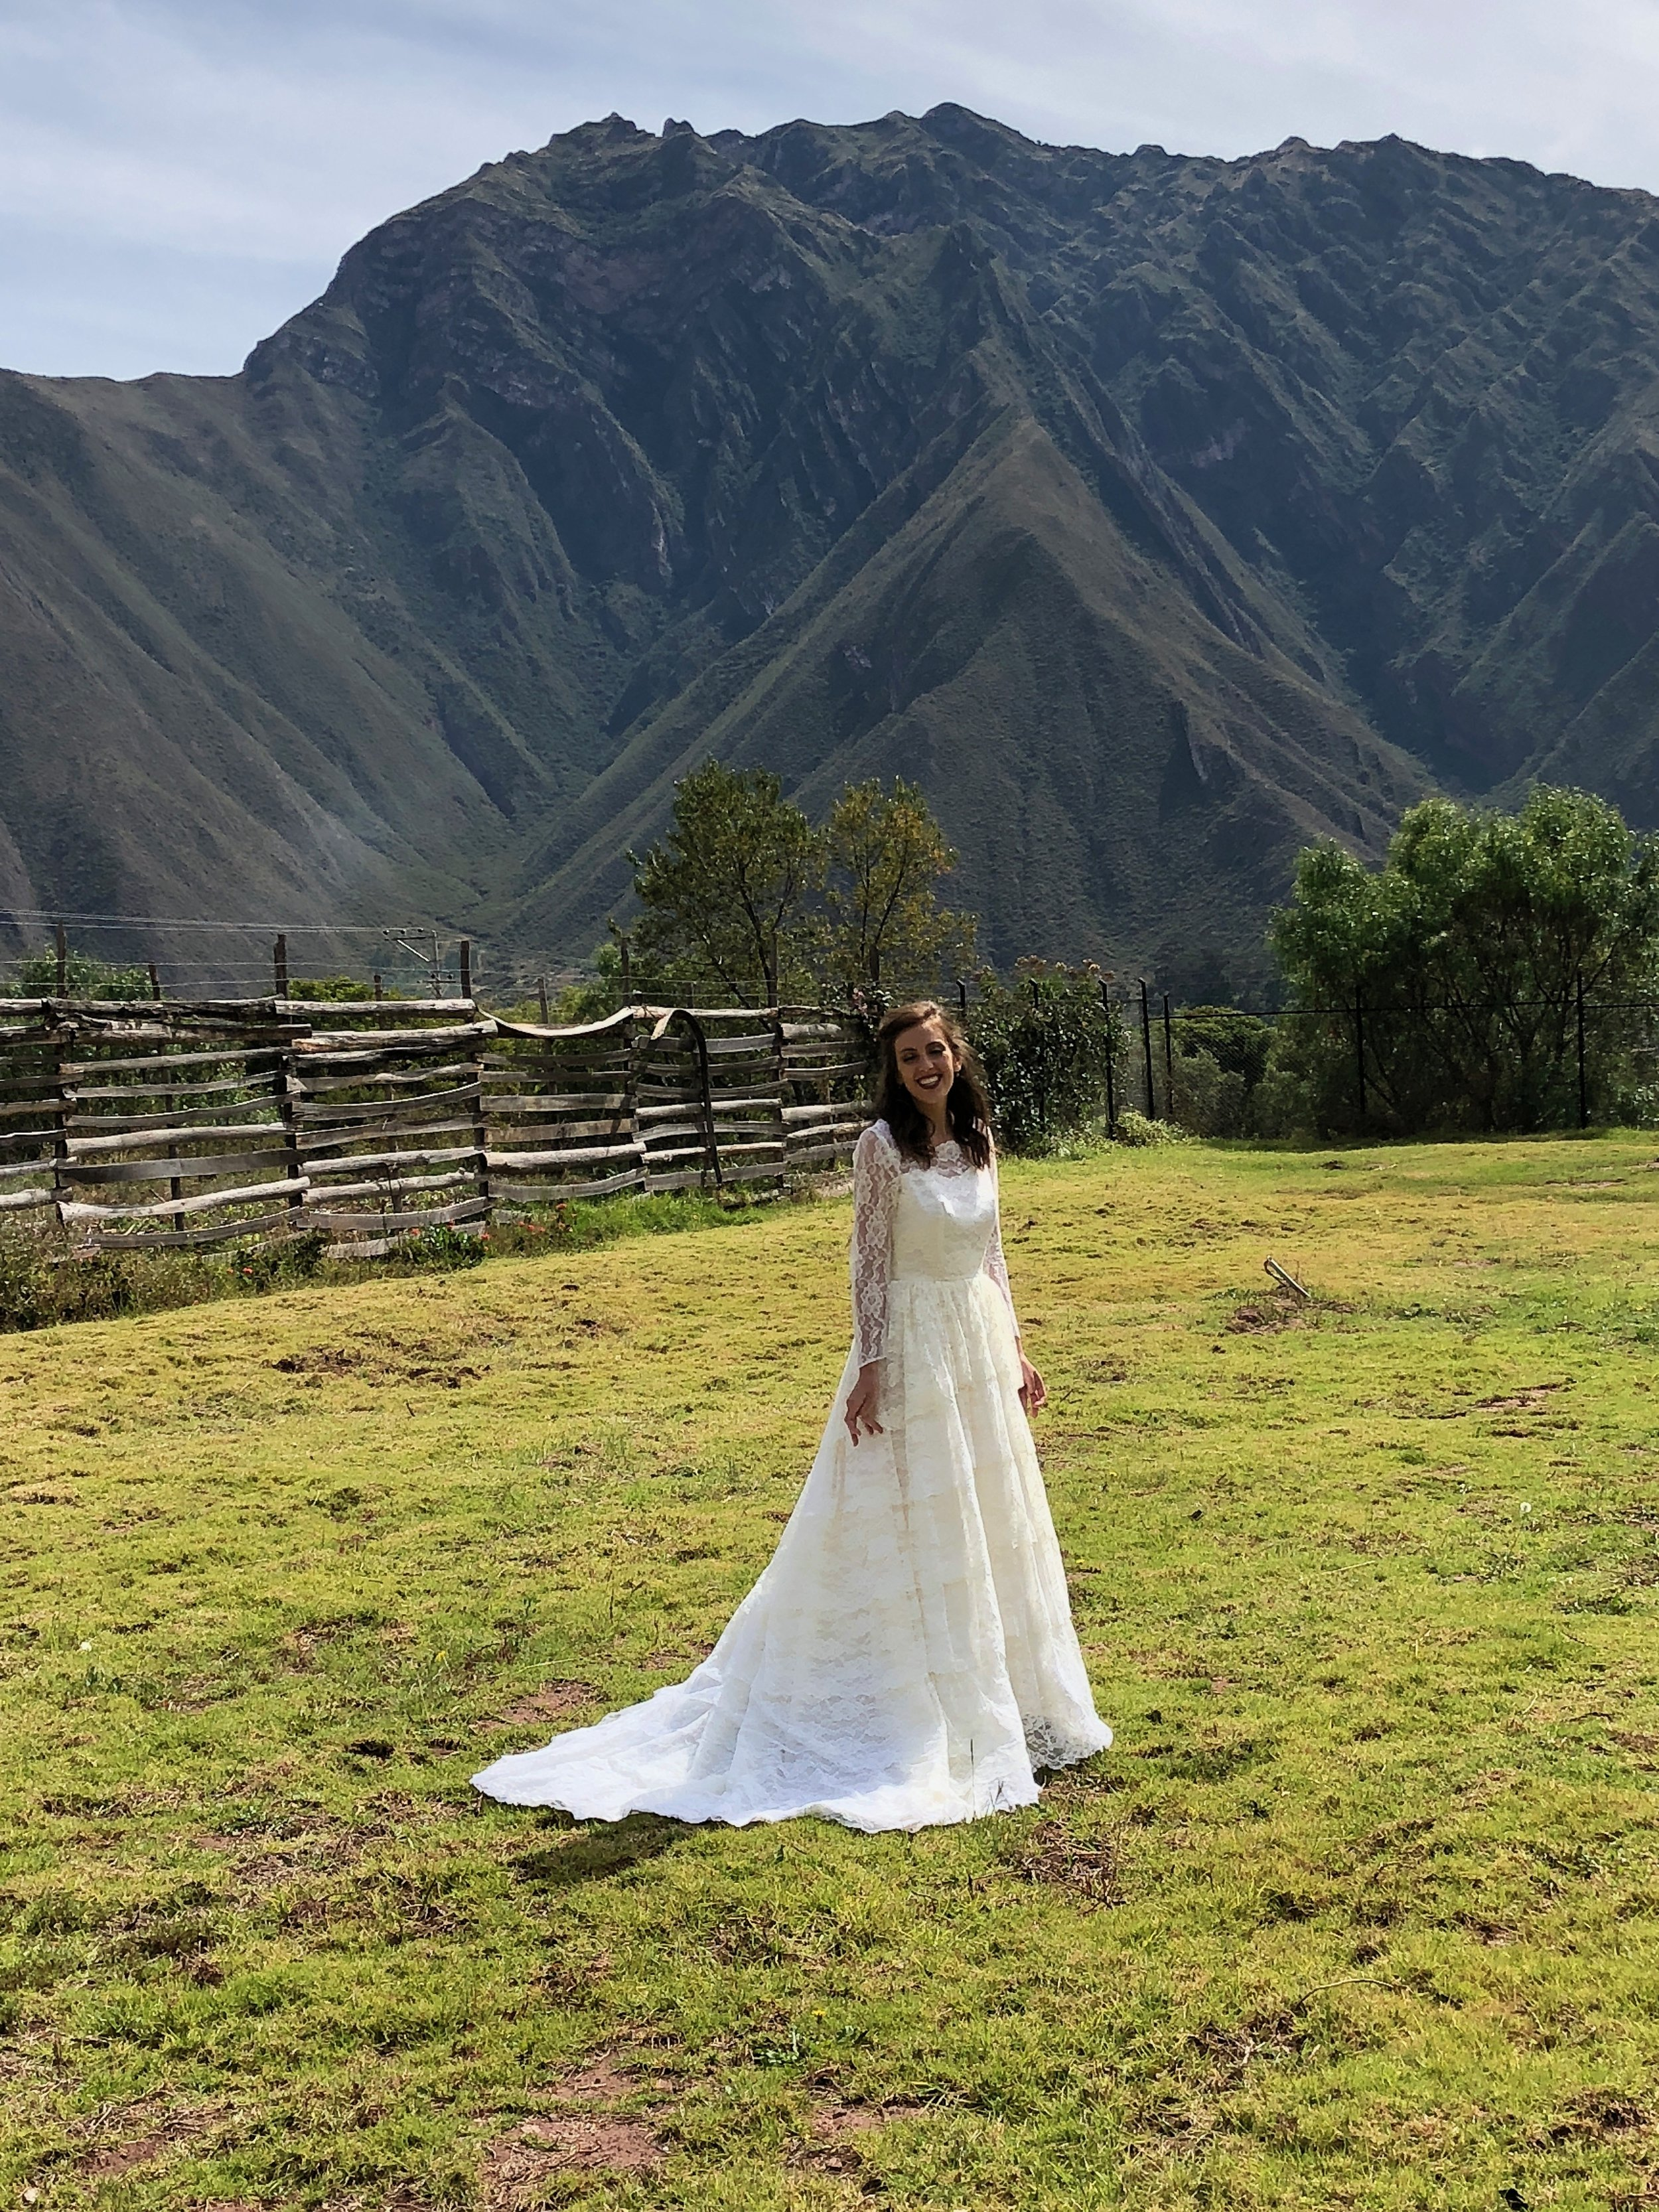 ramble and rove - R&R Photography - wedding in peru - peru - peru mountains - mountain wedding - the mountains are calling and I must go - wedding blog - lifestyle blog - wedding - extreme wedding